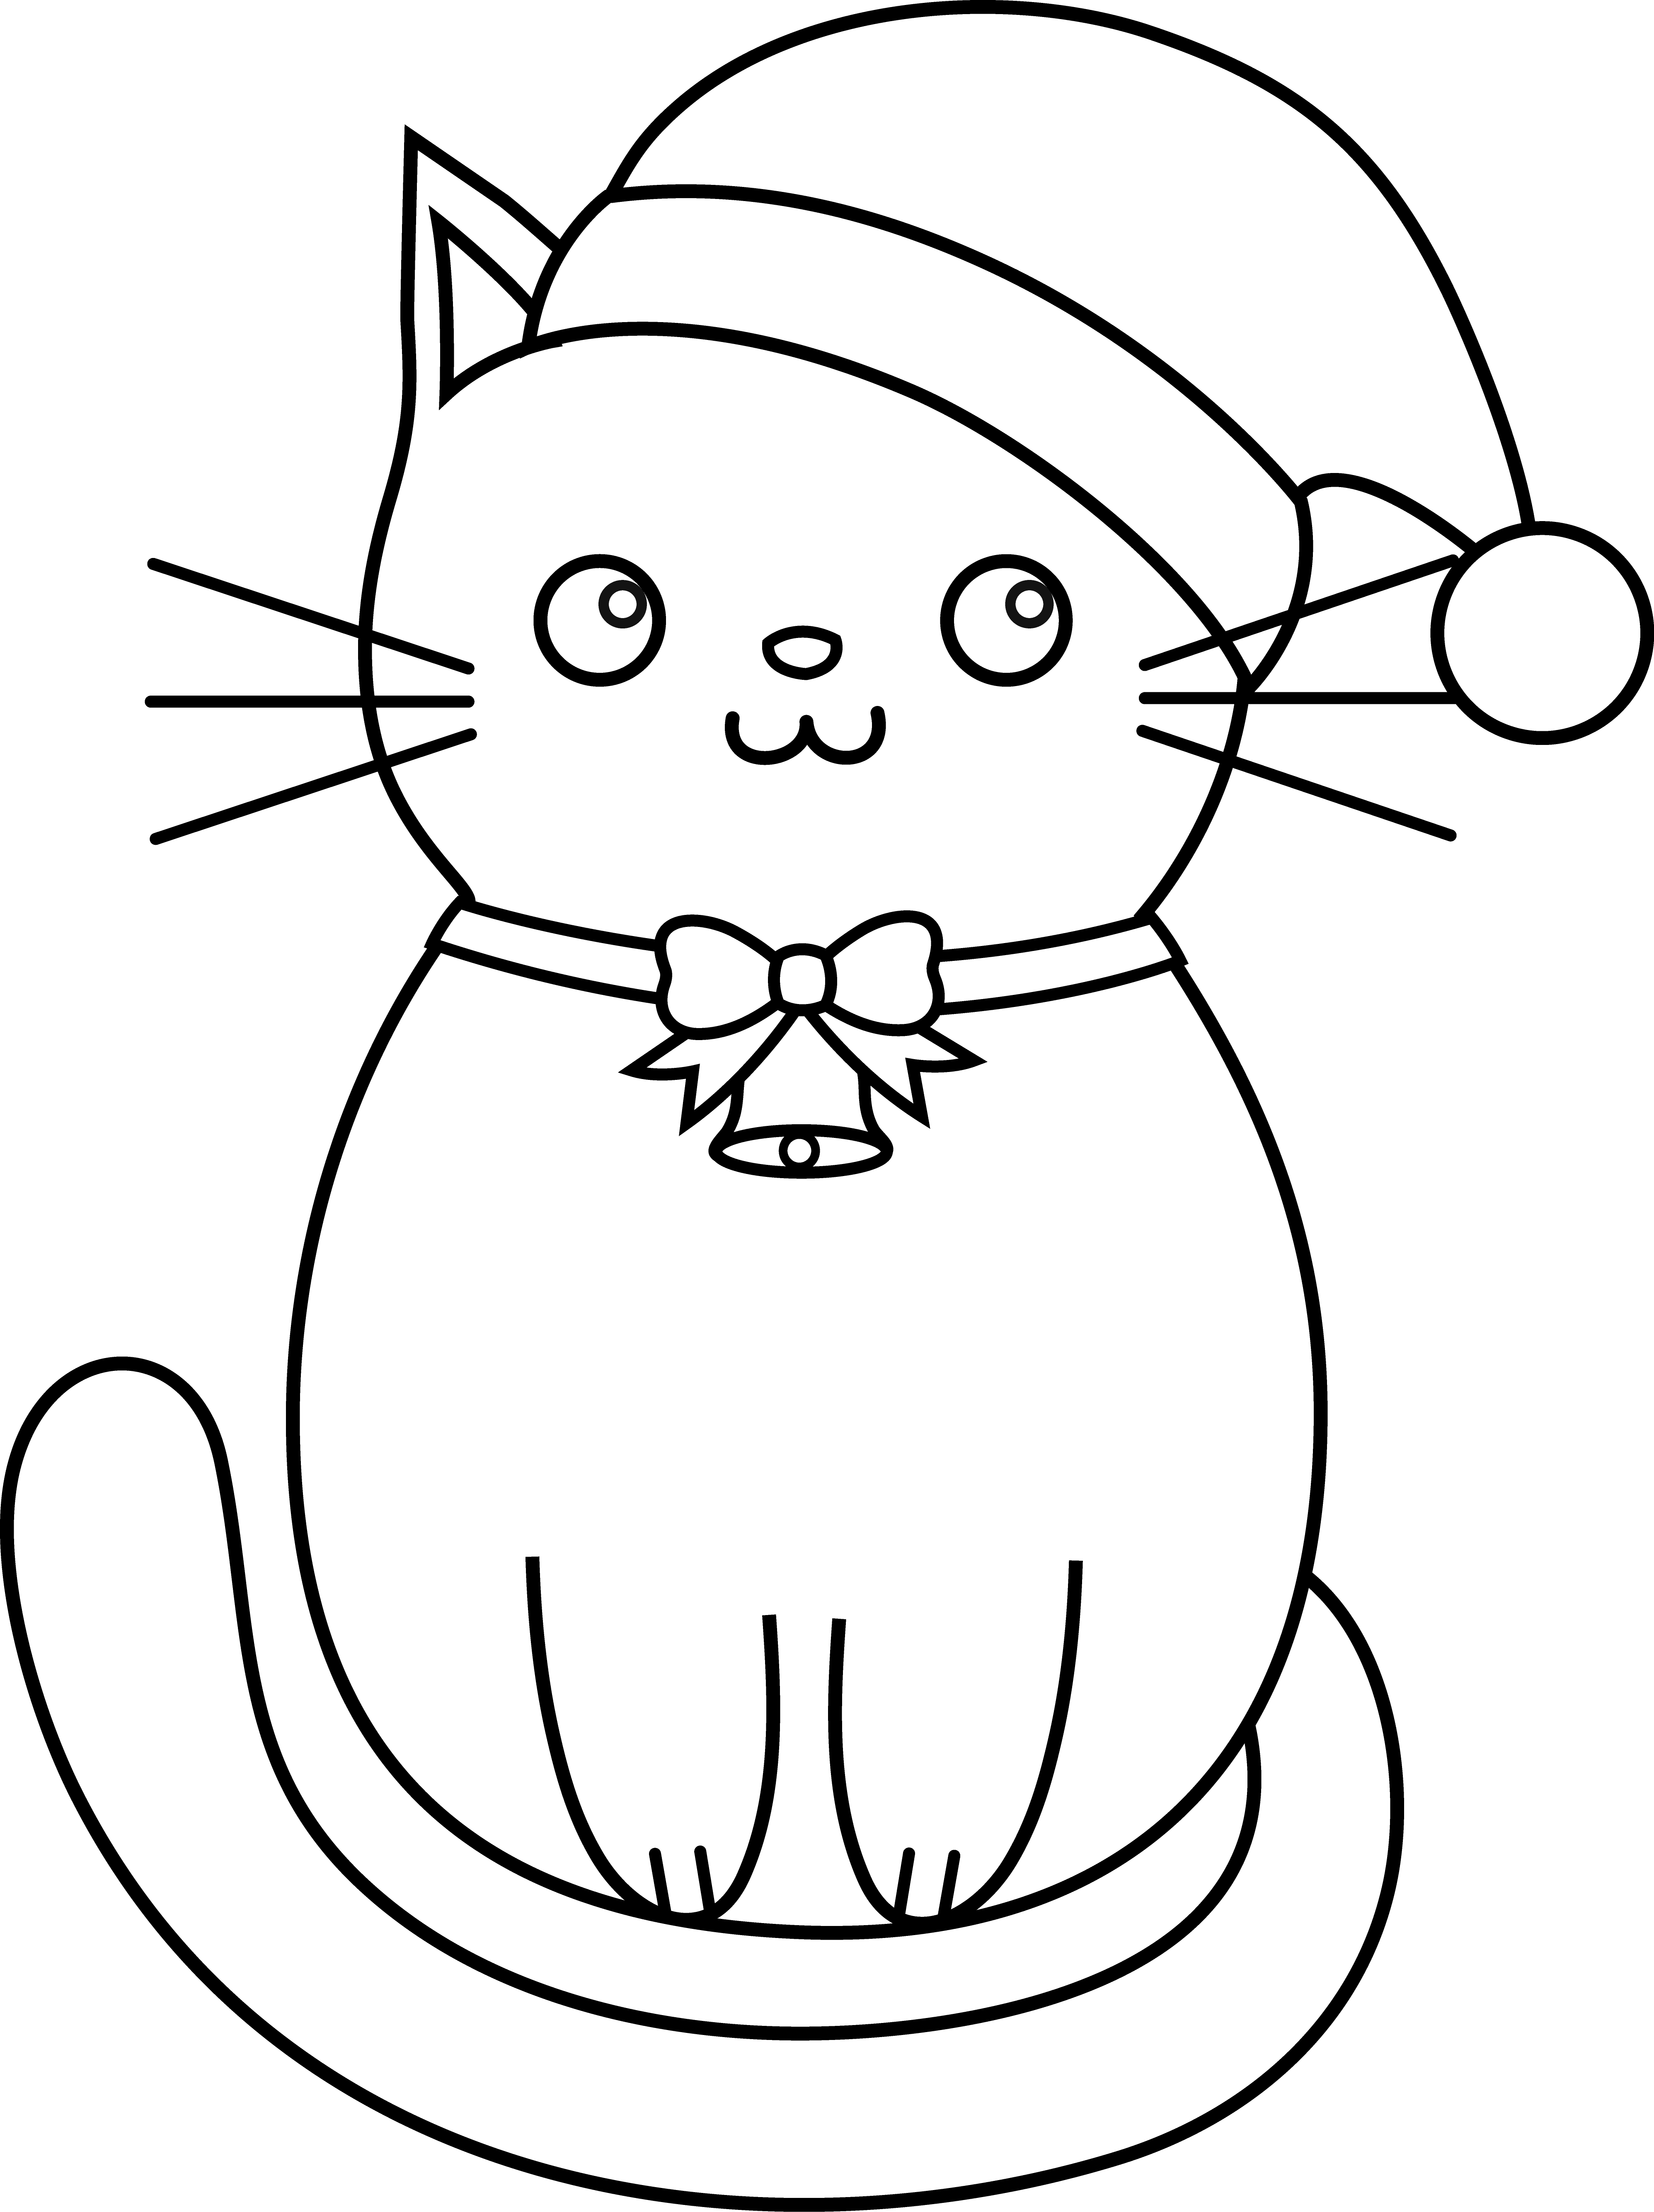 Christmas Cat Coloring Pages With Kitty Lineart Cardssss Pinterest